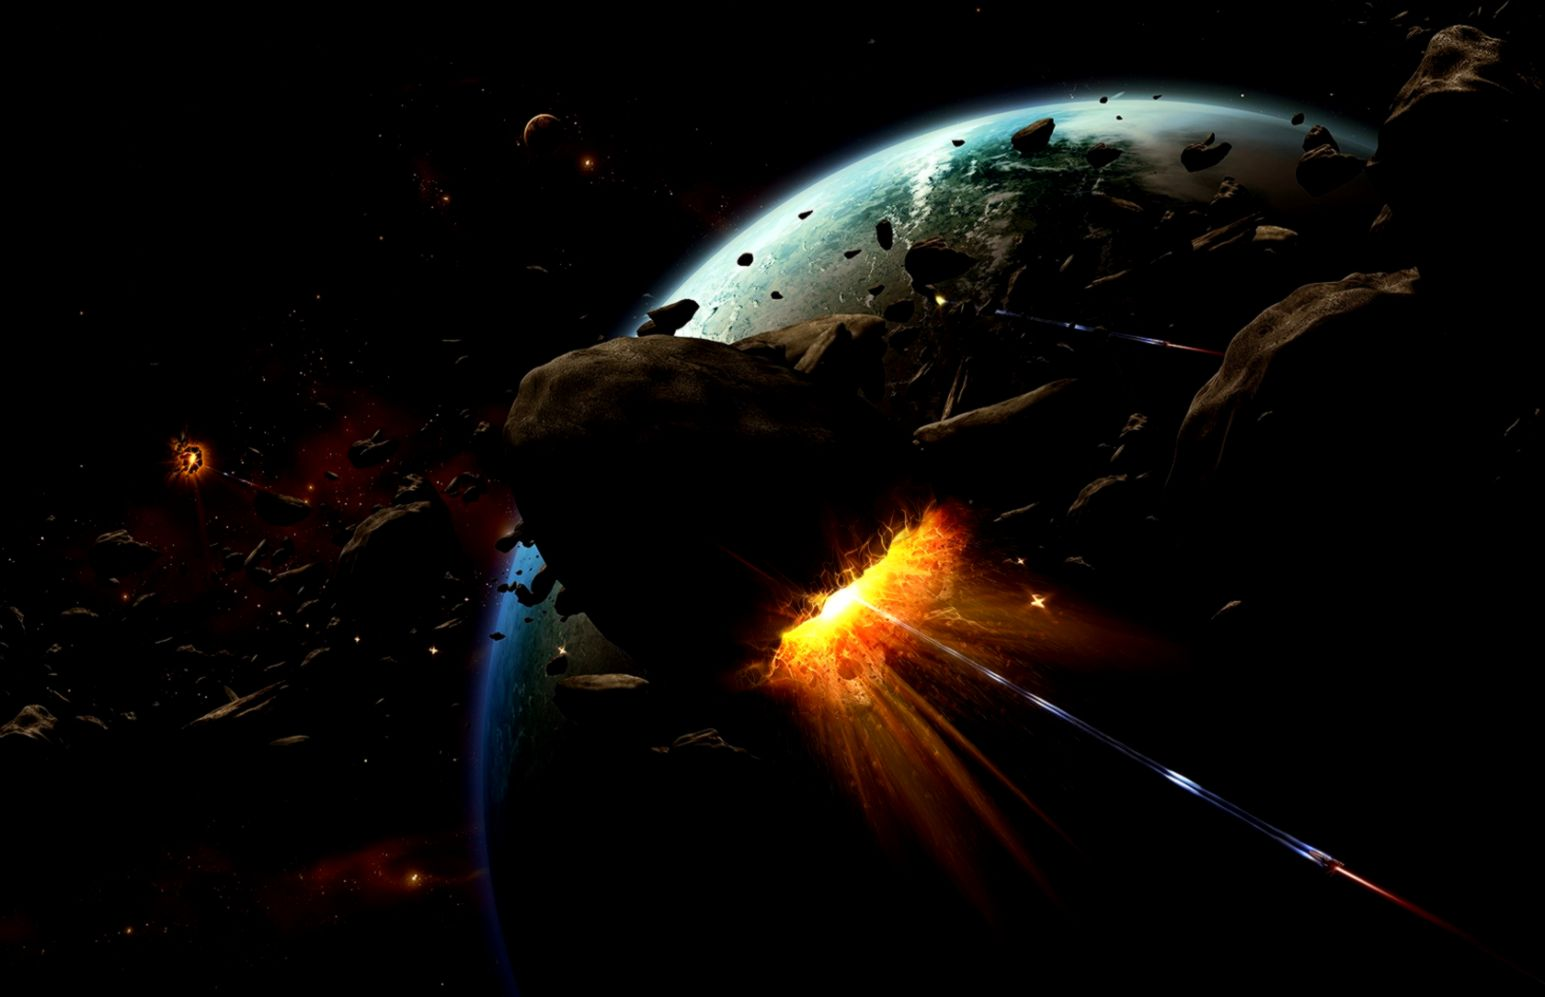 Space Universe And Planets Digital Art Hd Wallpaper